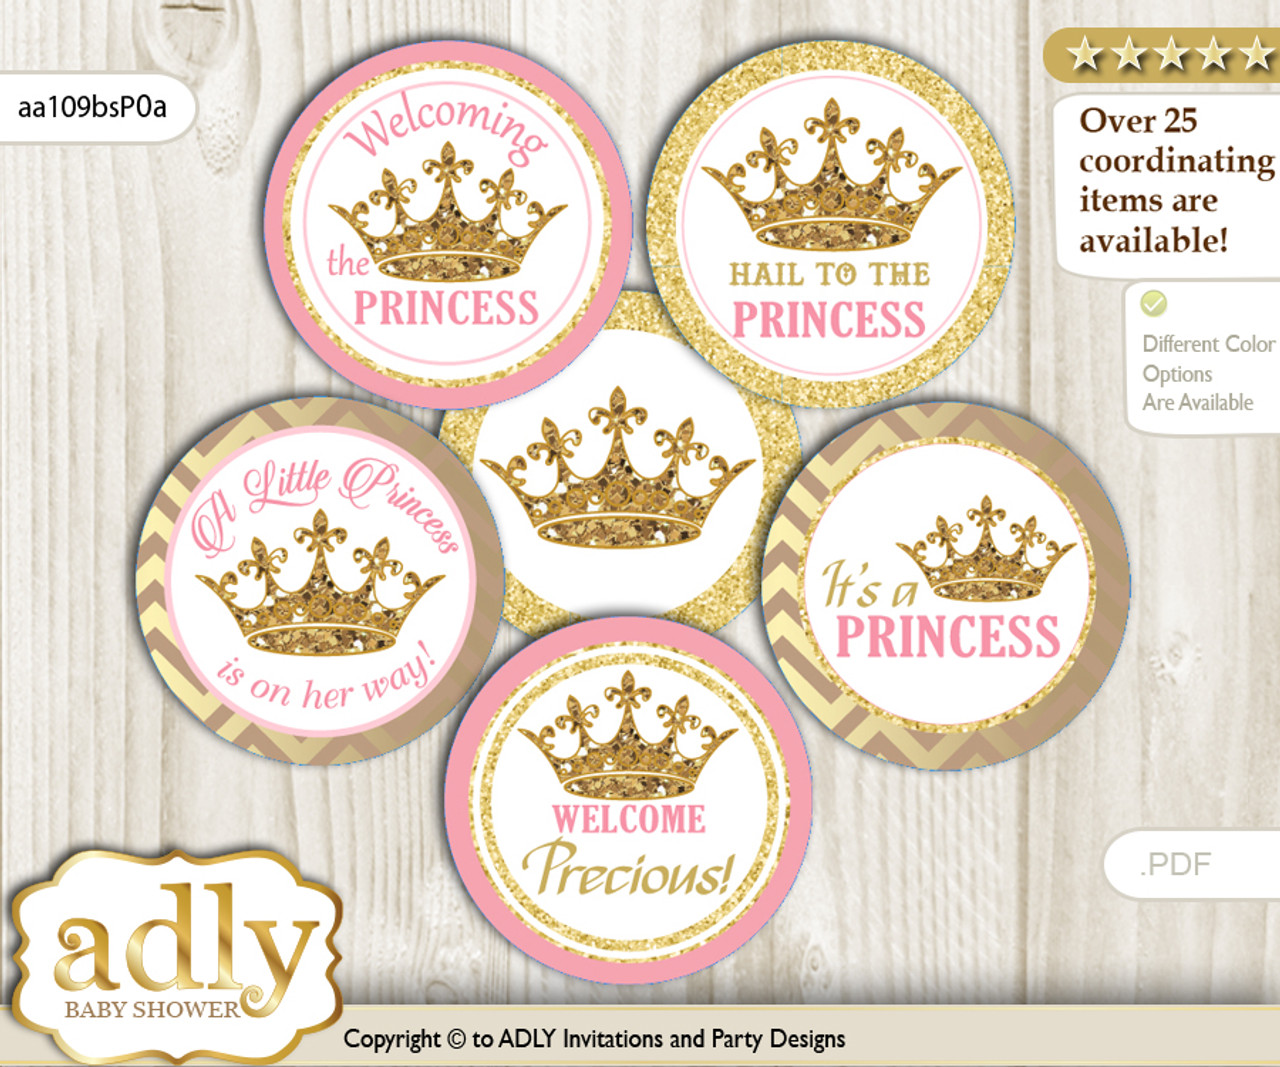 image about Printable Cupcakes Toppers named Boy or girl Shower Royal Princess Cupcake Toppers Printable Report for Small Royal and Mommy-toward-be, prefer tags, circle toppers, Glitter, purple gold m